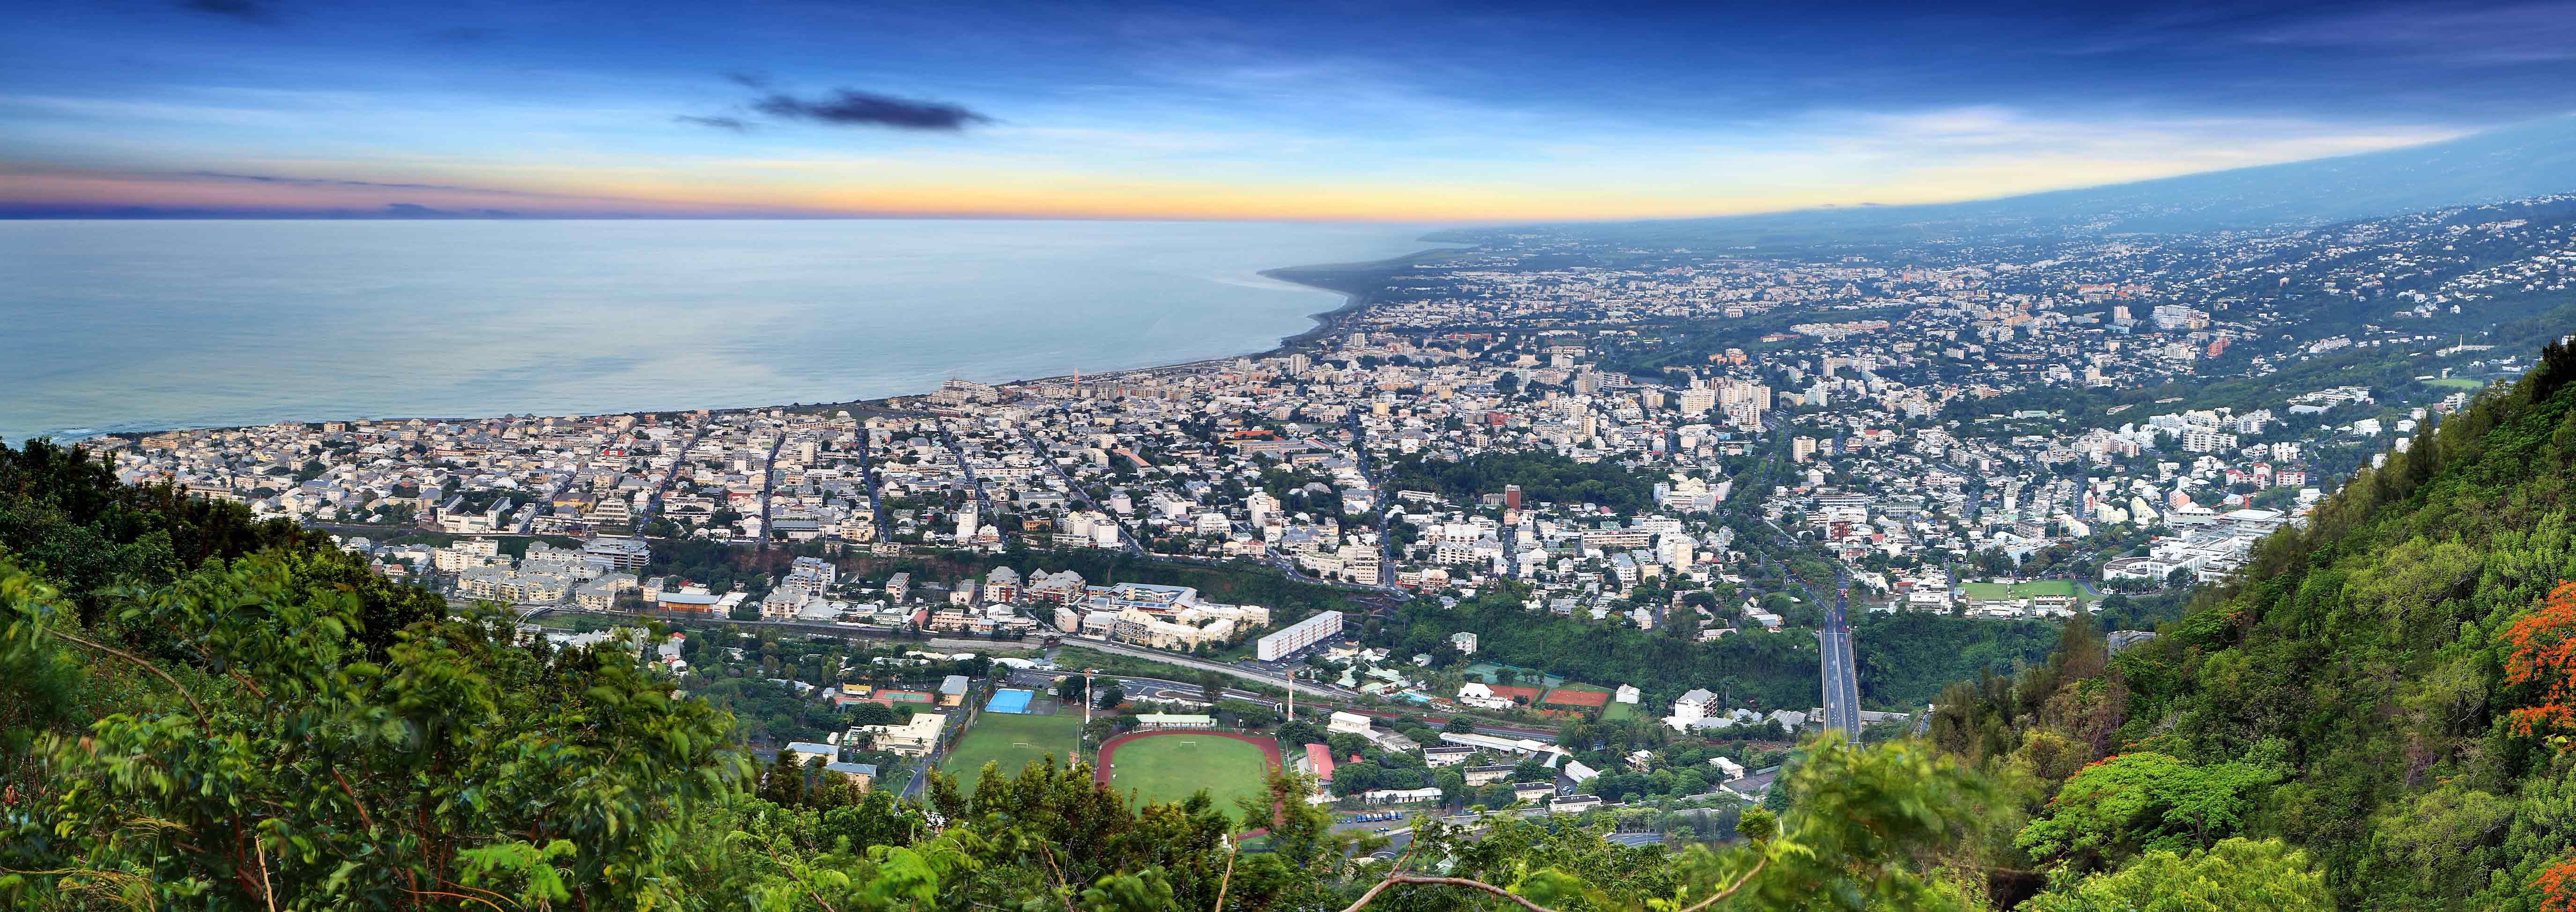 Panorama over a city in Reunion.